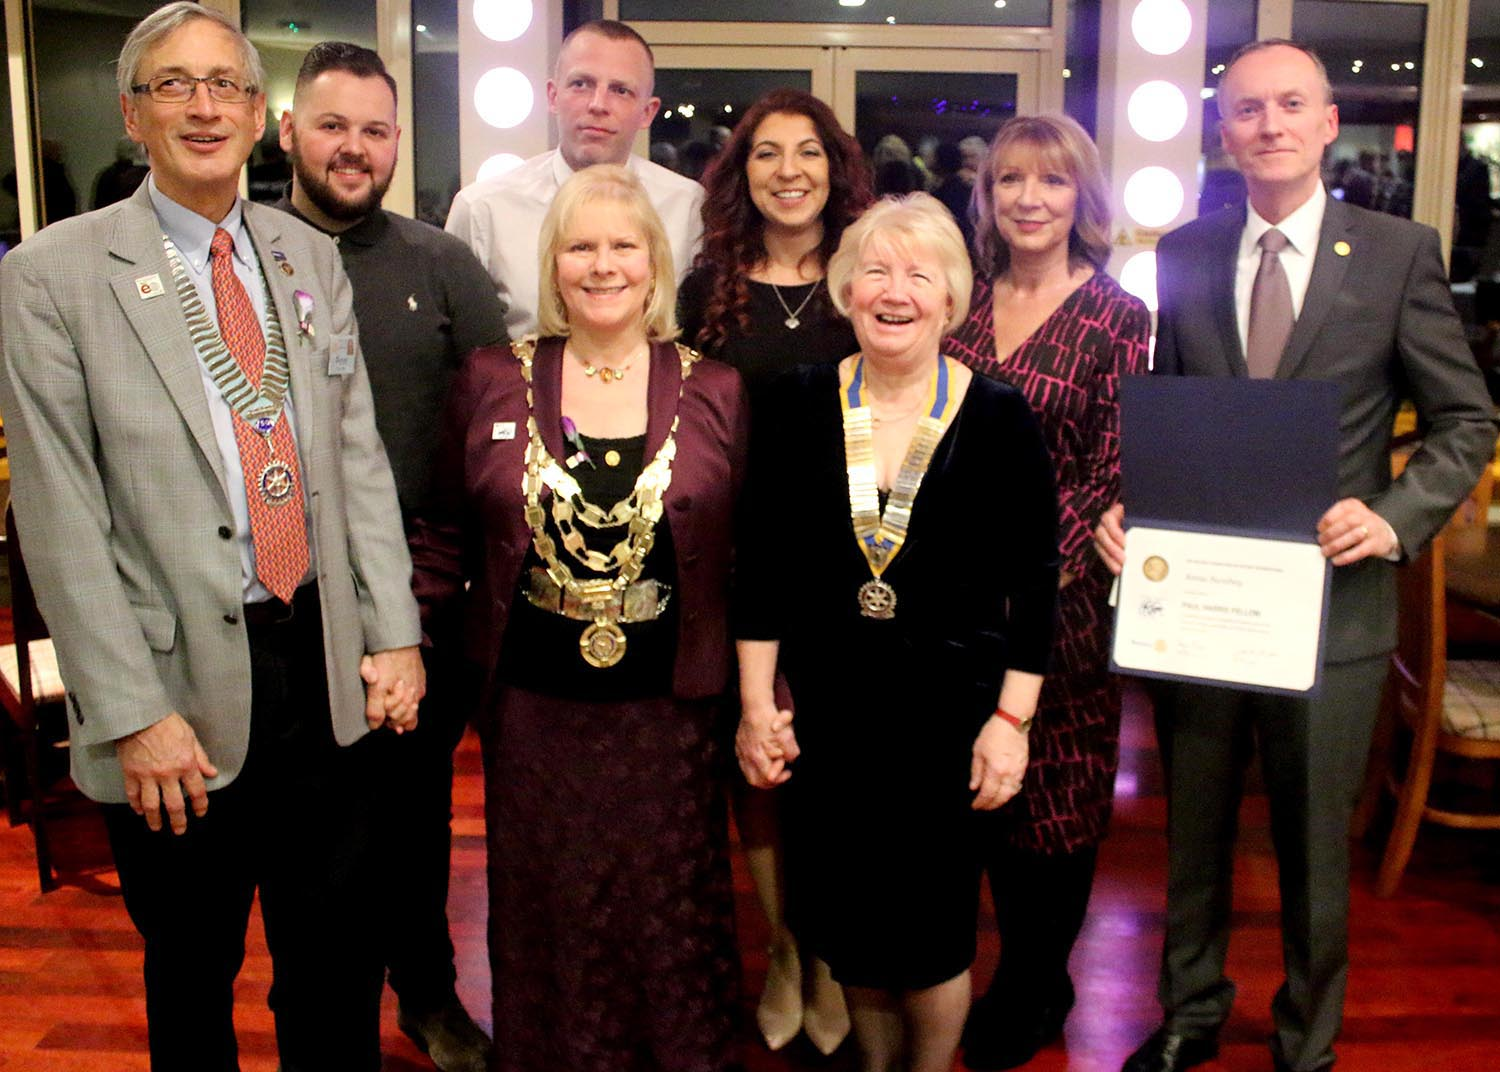 Rotary Honour for Cancer Campaigner Anna Swabey